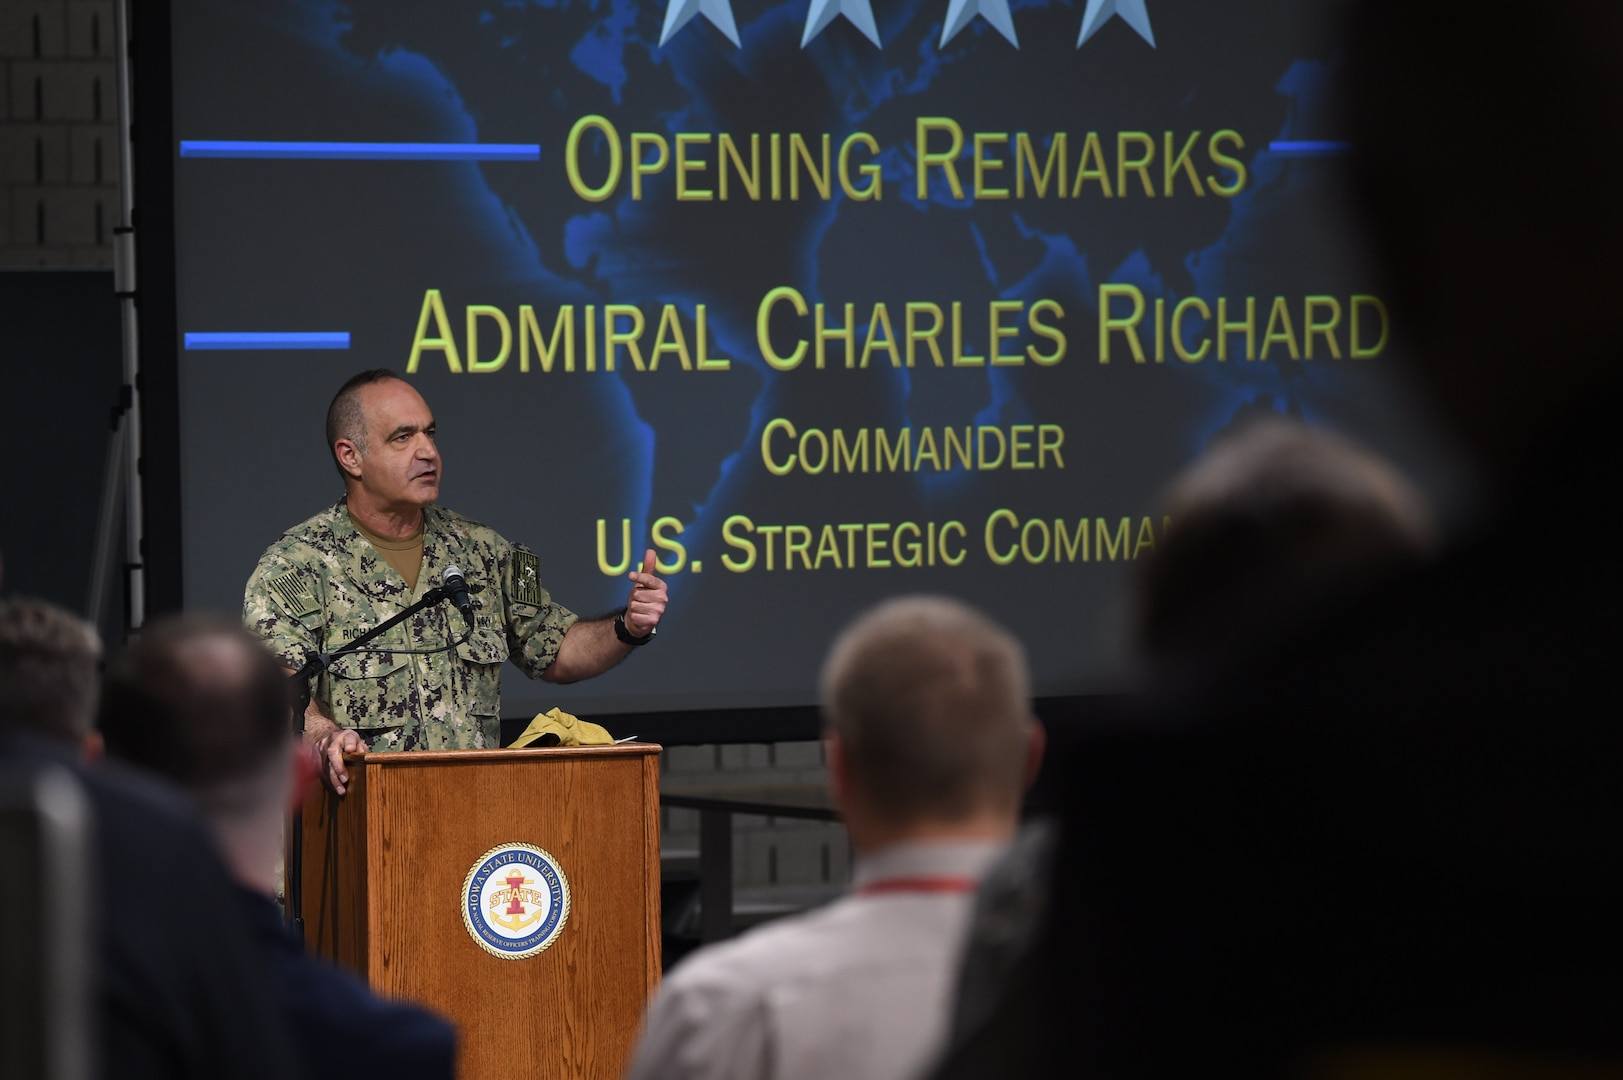 U.S. Navy Adm. Charles Richard, commander of U.S. Strategic Command (USSTRATCOM), speaks to faculty members and students participating in a table top exercise during the 2020 Deterrence and Assurance Academic Alliance Conference at Iowa State University in Ames, Iowa, March 11, 2020. Over 100 participants engaged in a 4-hour wargame designed to apply students' knowledge of U.S. instruments of national power, as they developed solutions to a simulated crisis strategic decision-making scenario.